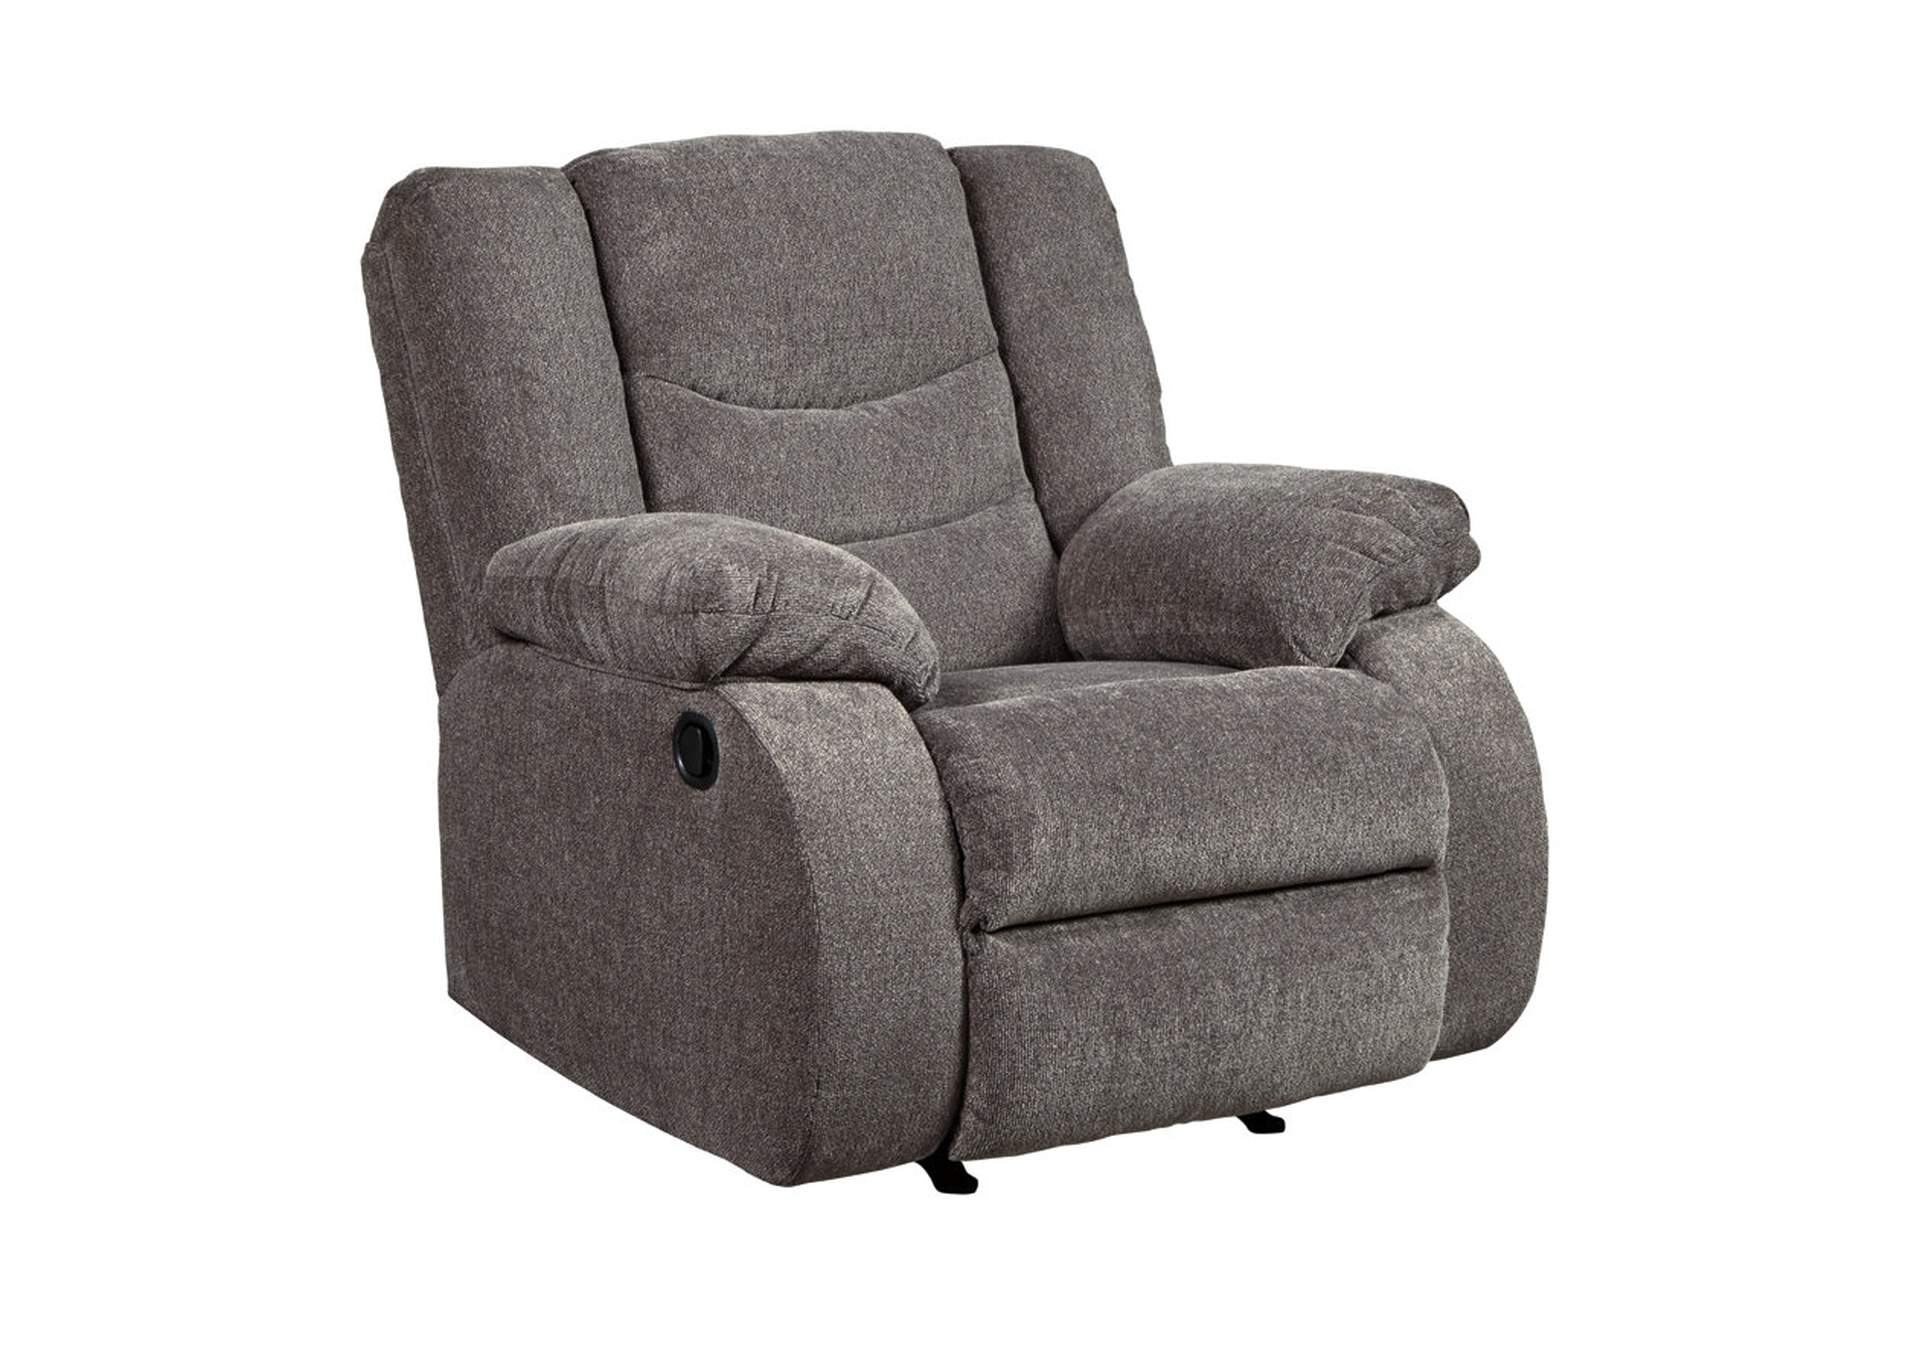 Tulen Gray Rocker Recliner,Signature Design By Ashley